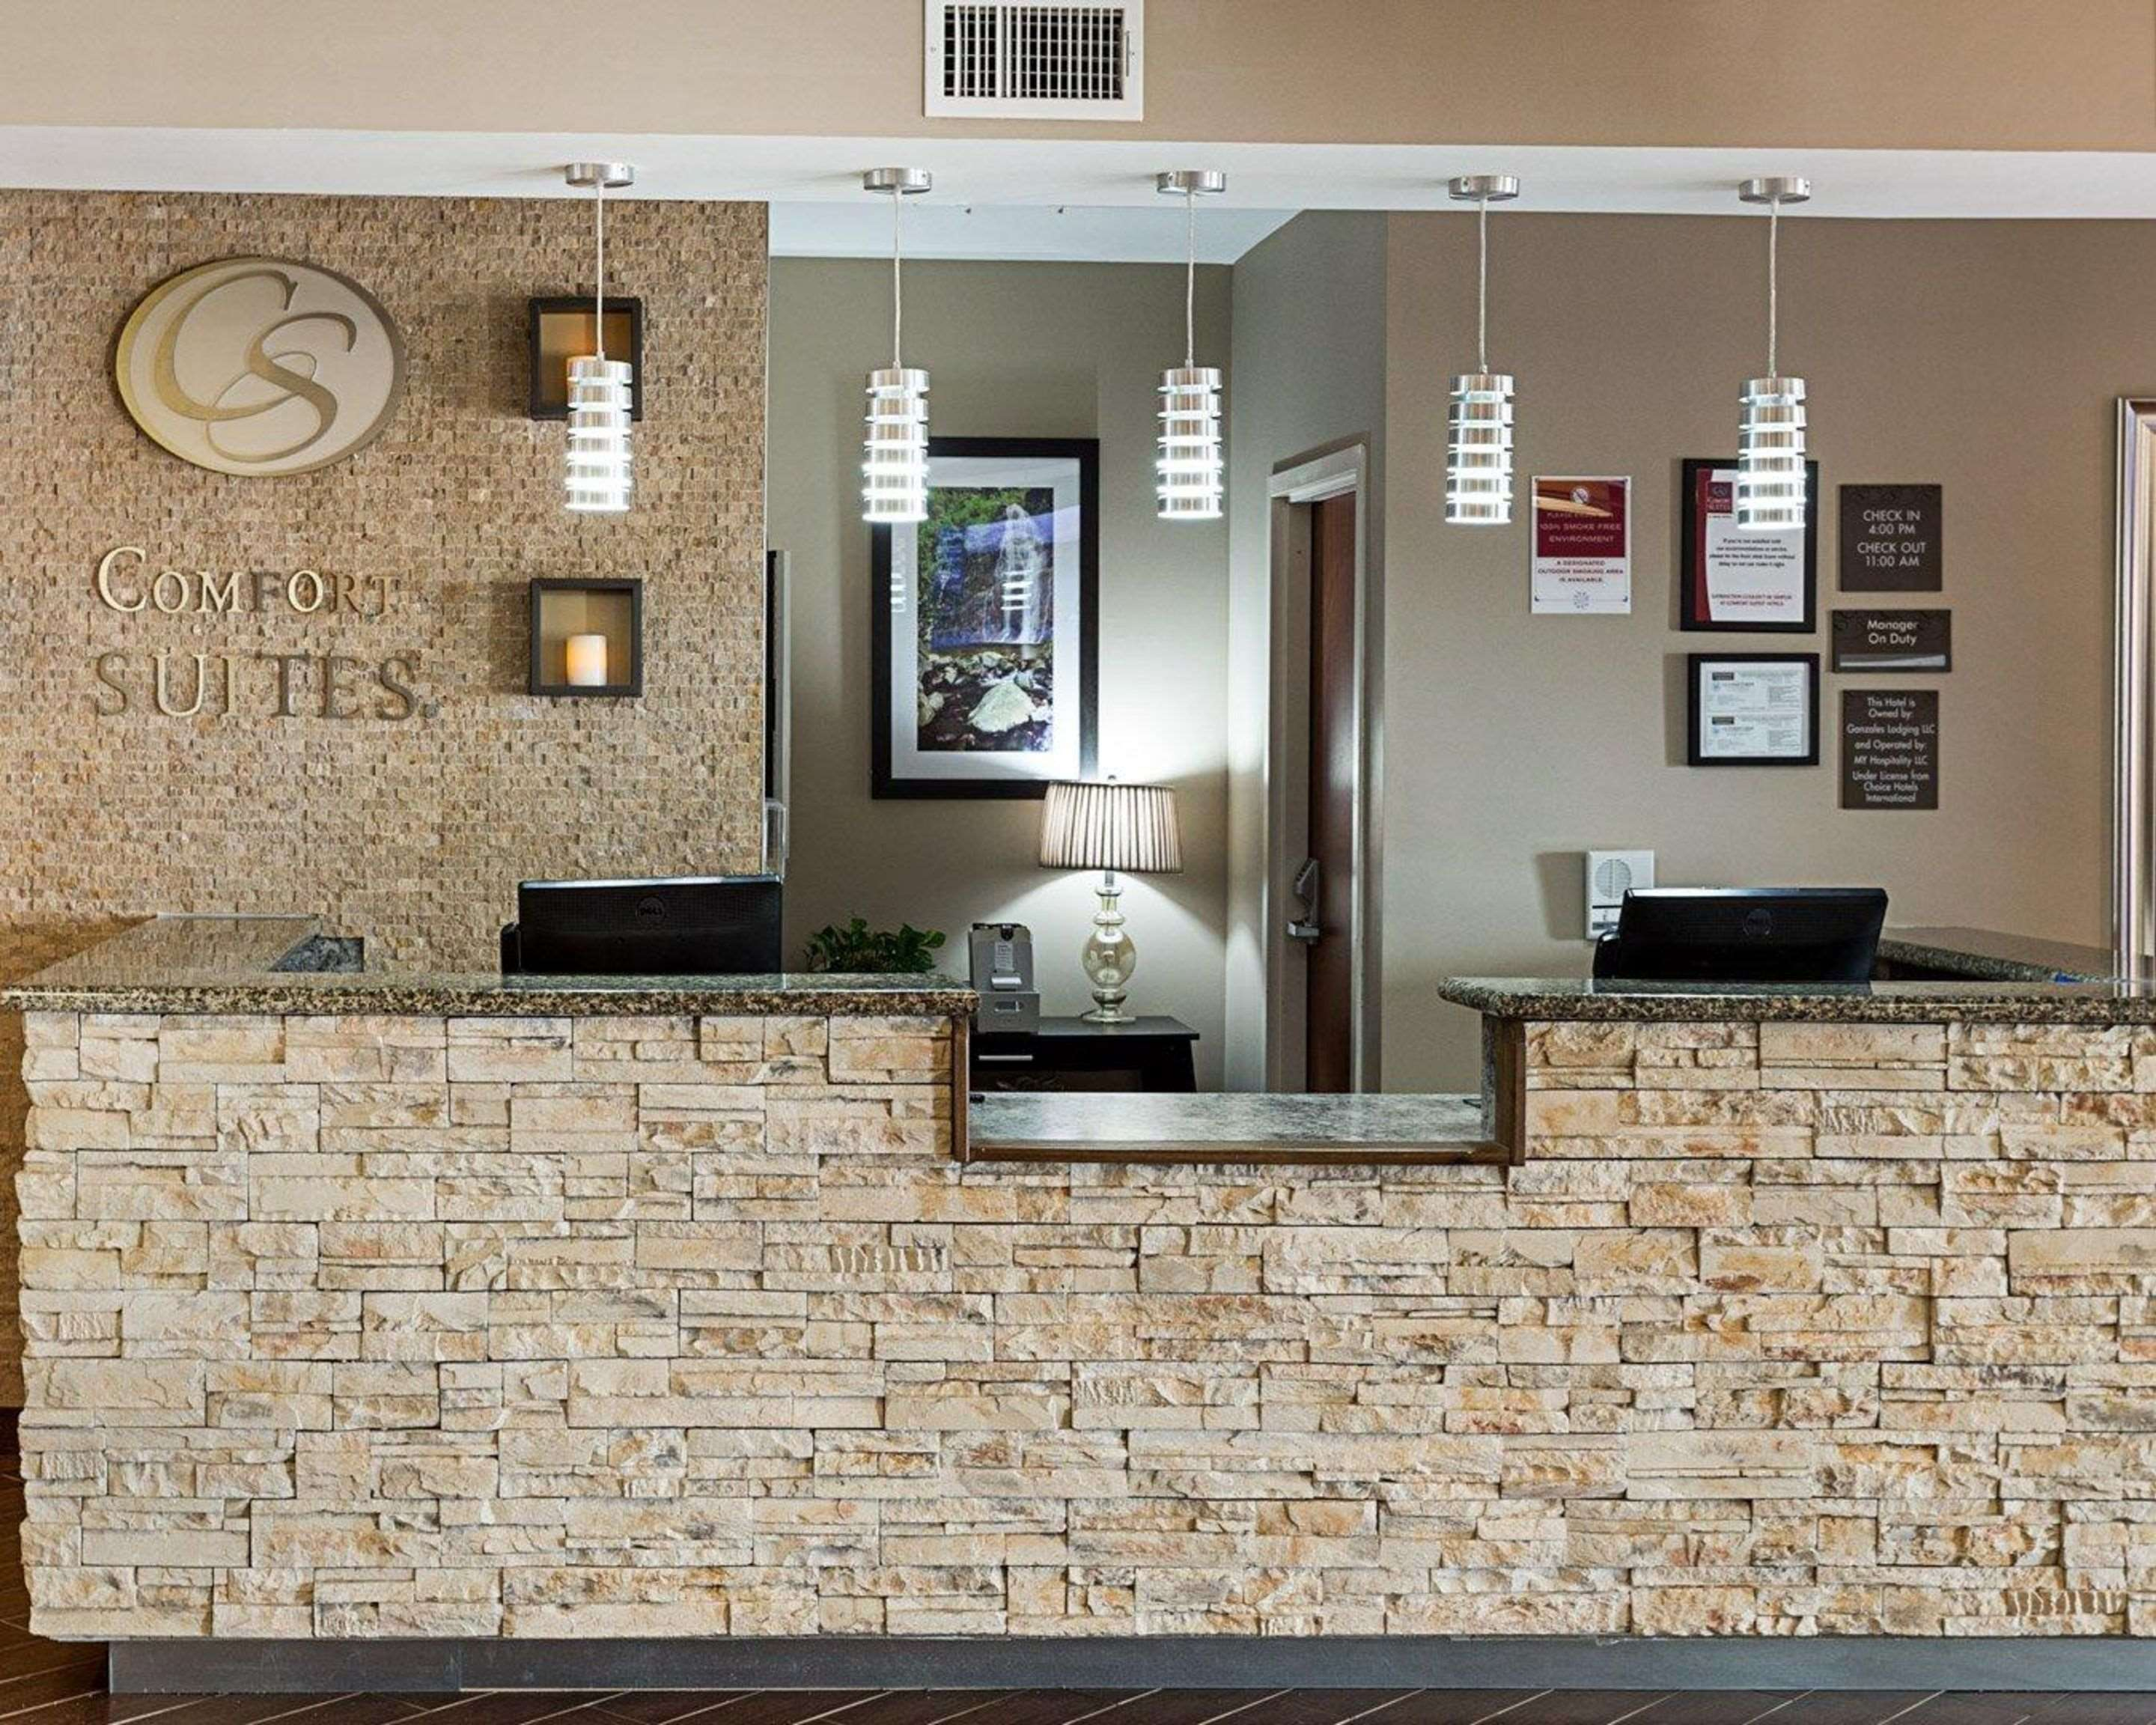 Comfort Suites Near Tanger Outlet Mall